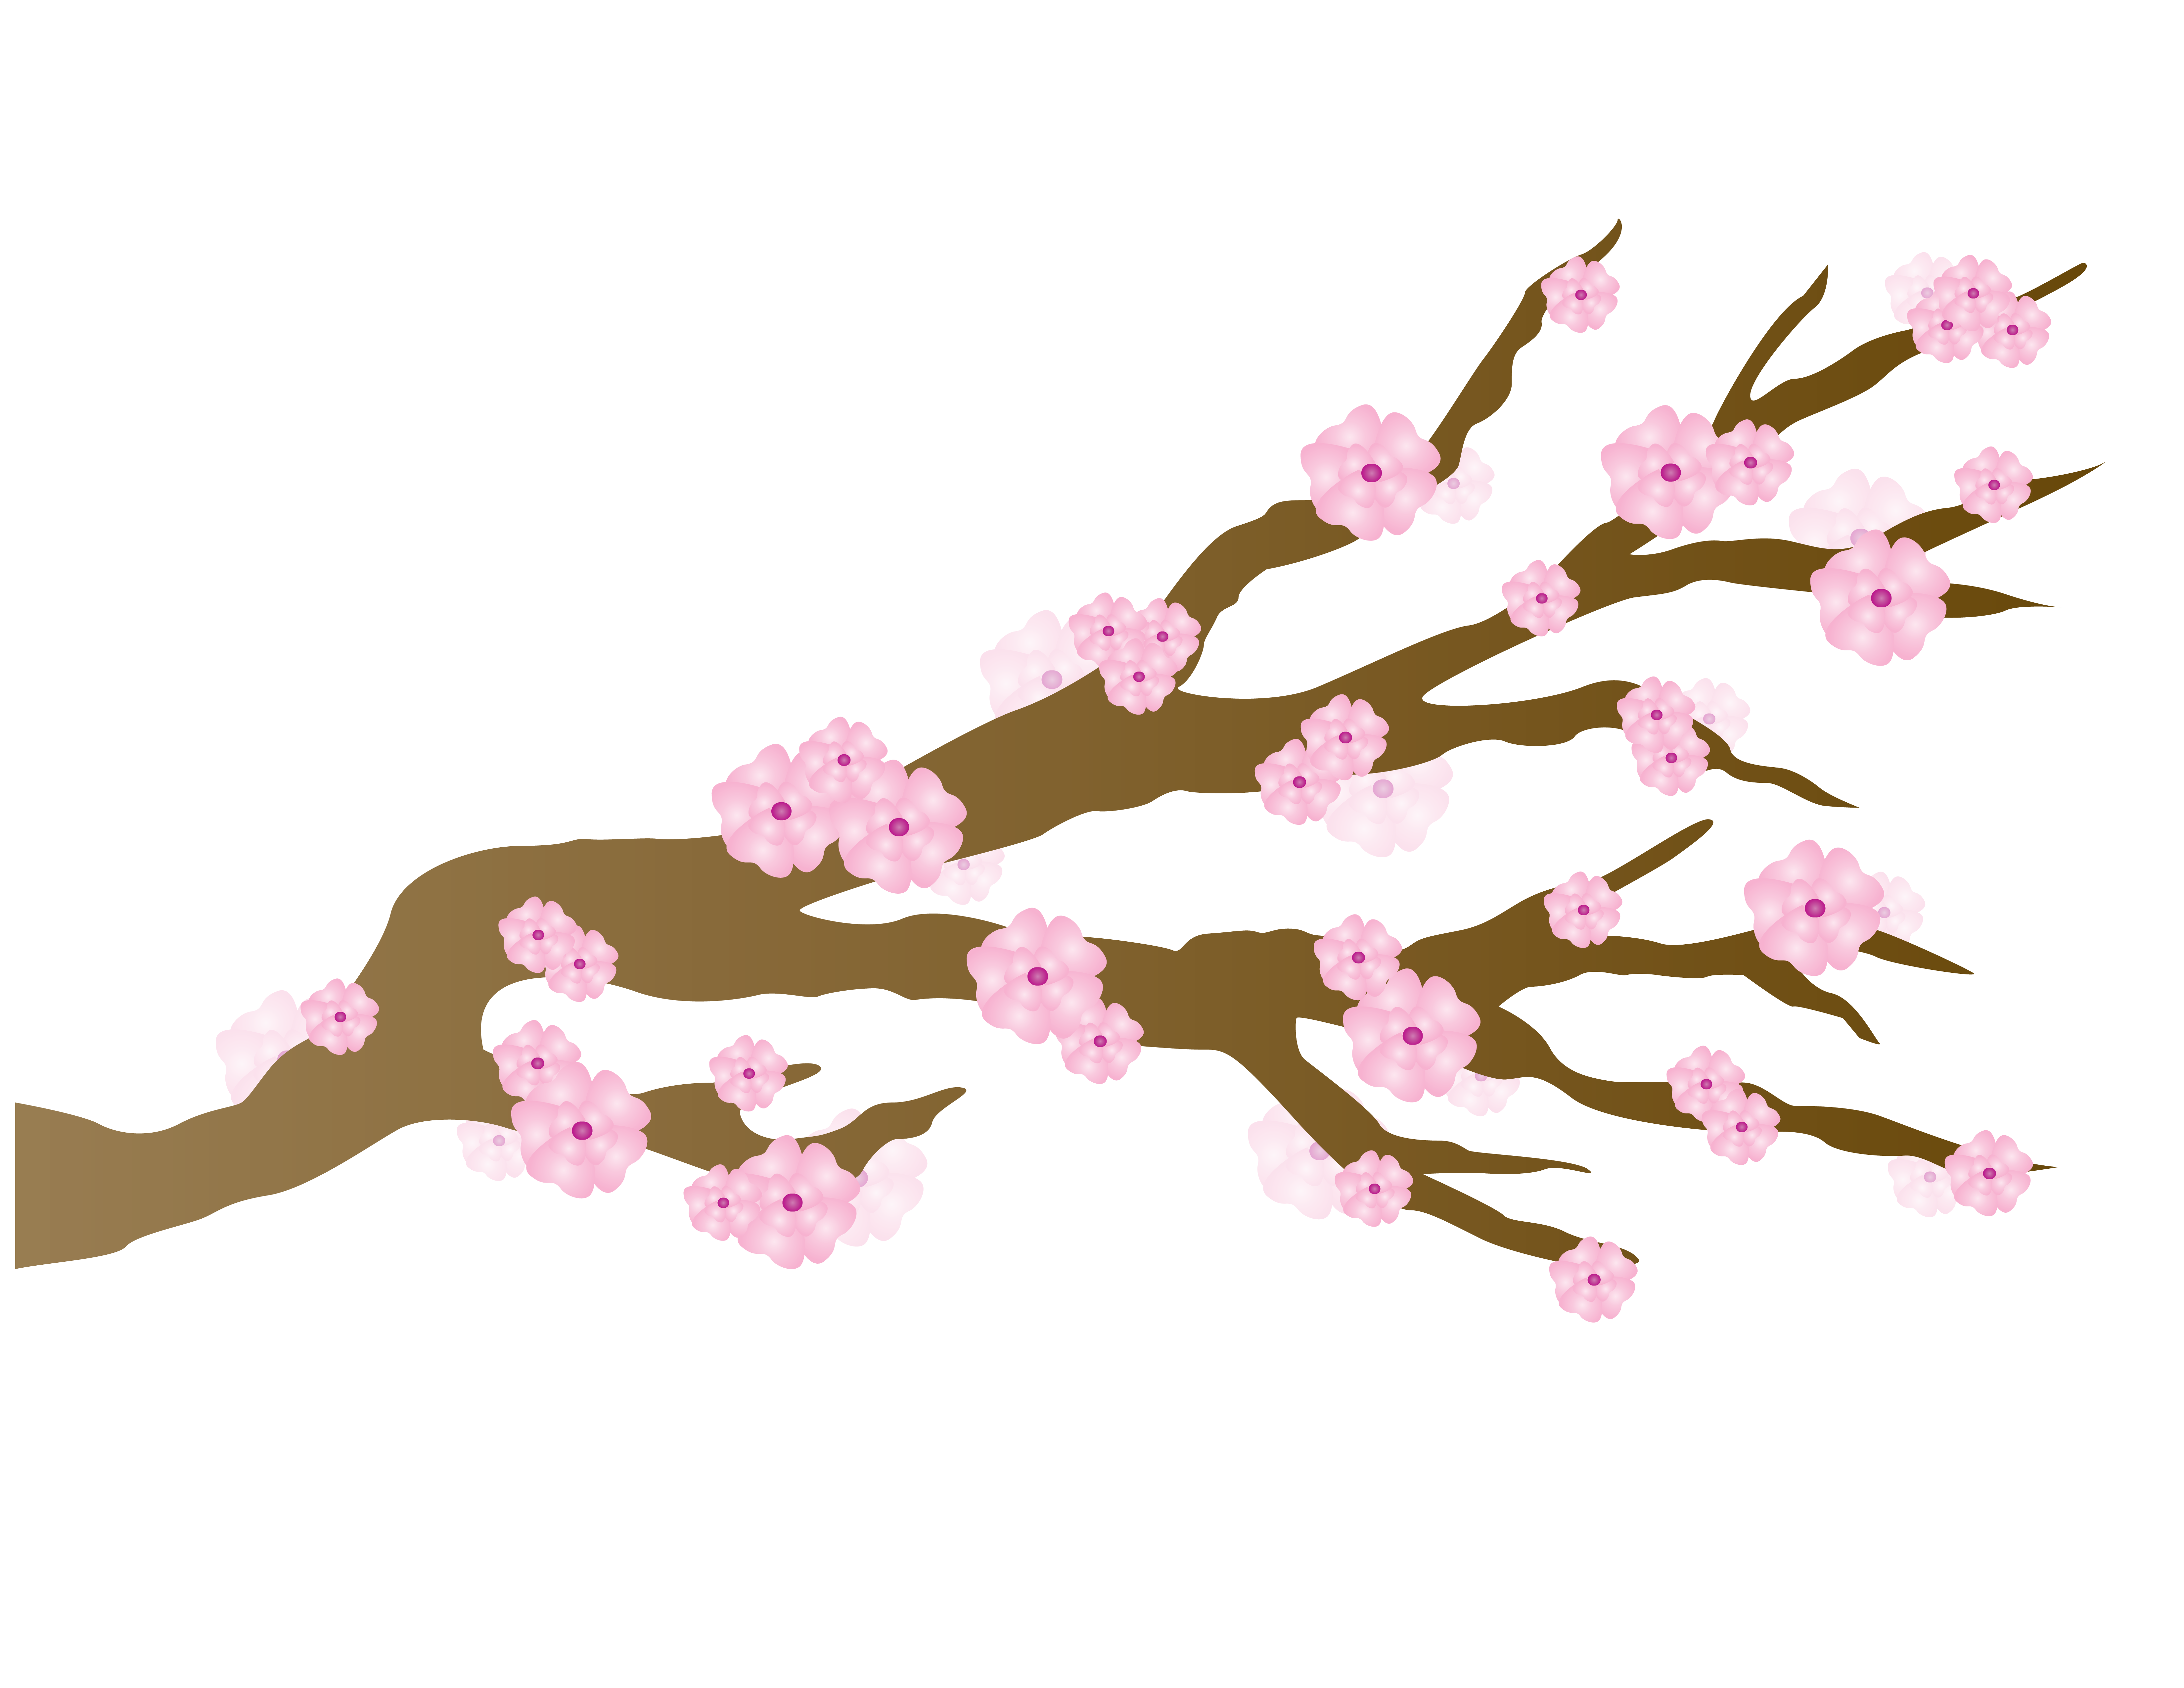 Cherry blossom vector png. Pink blossoms japanese draft